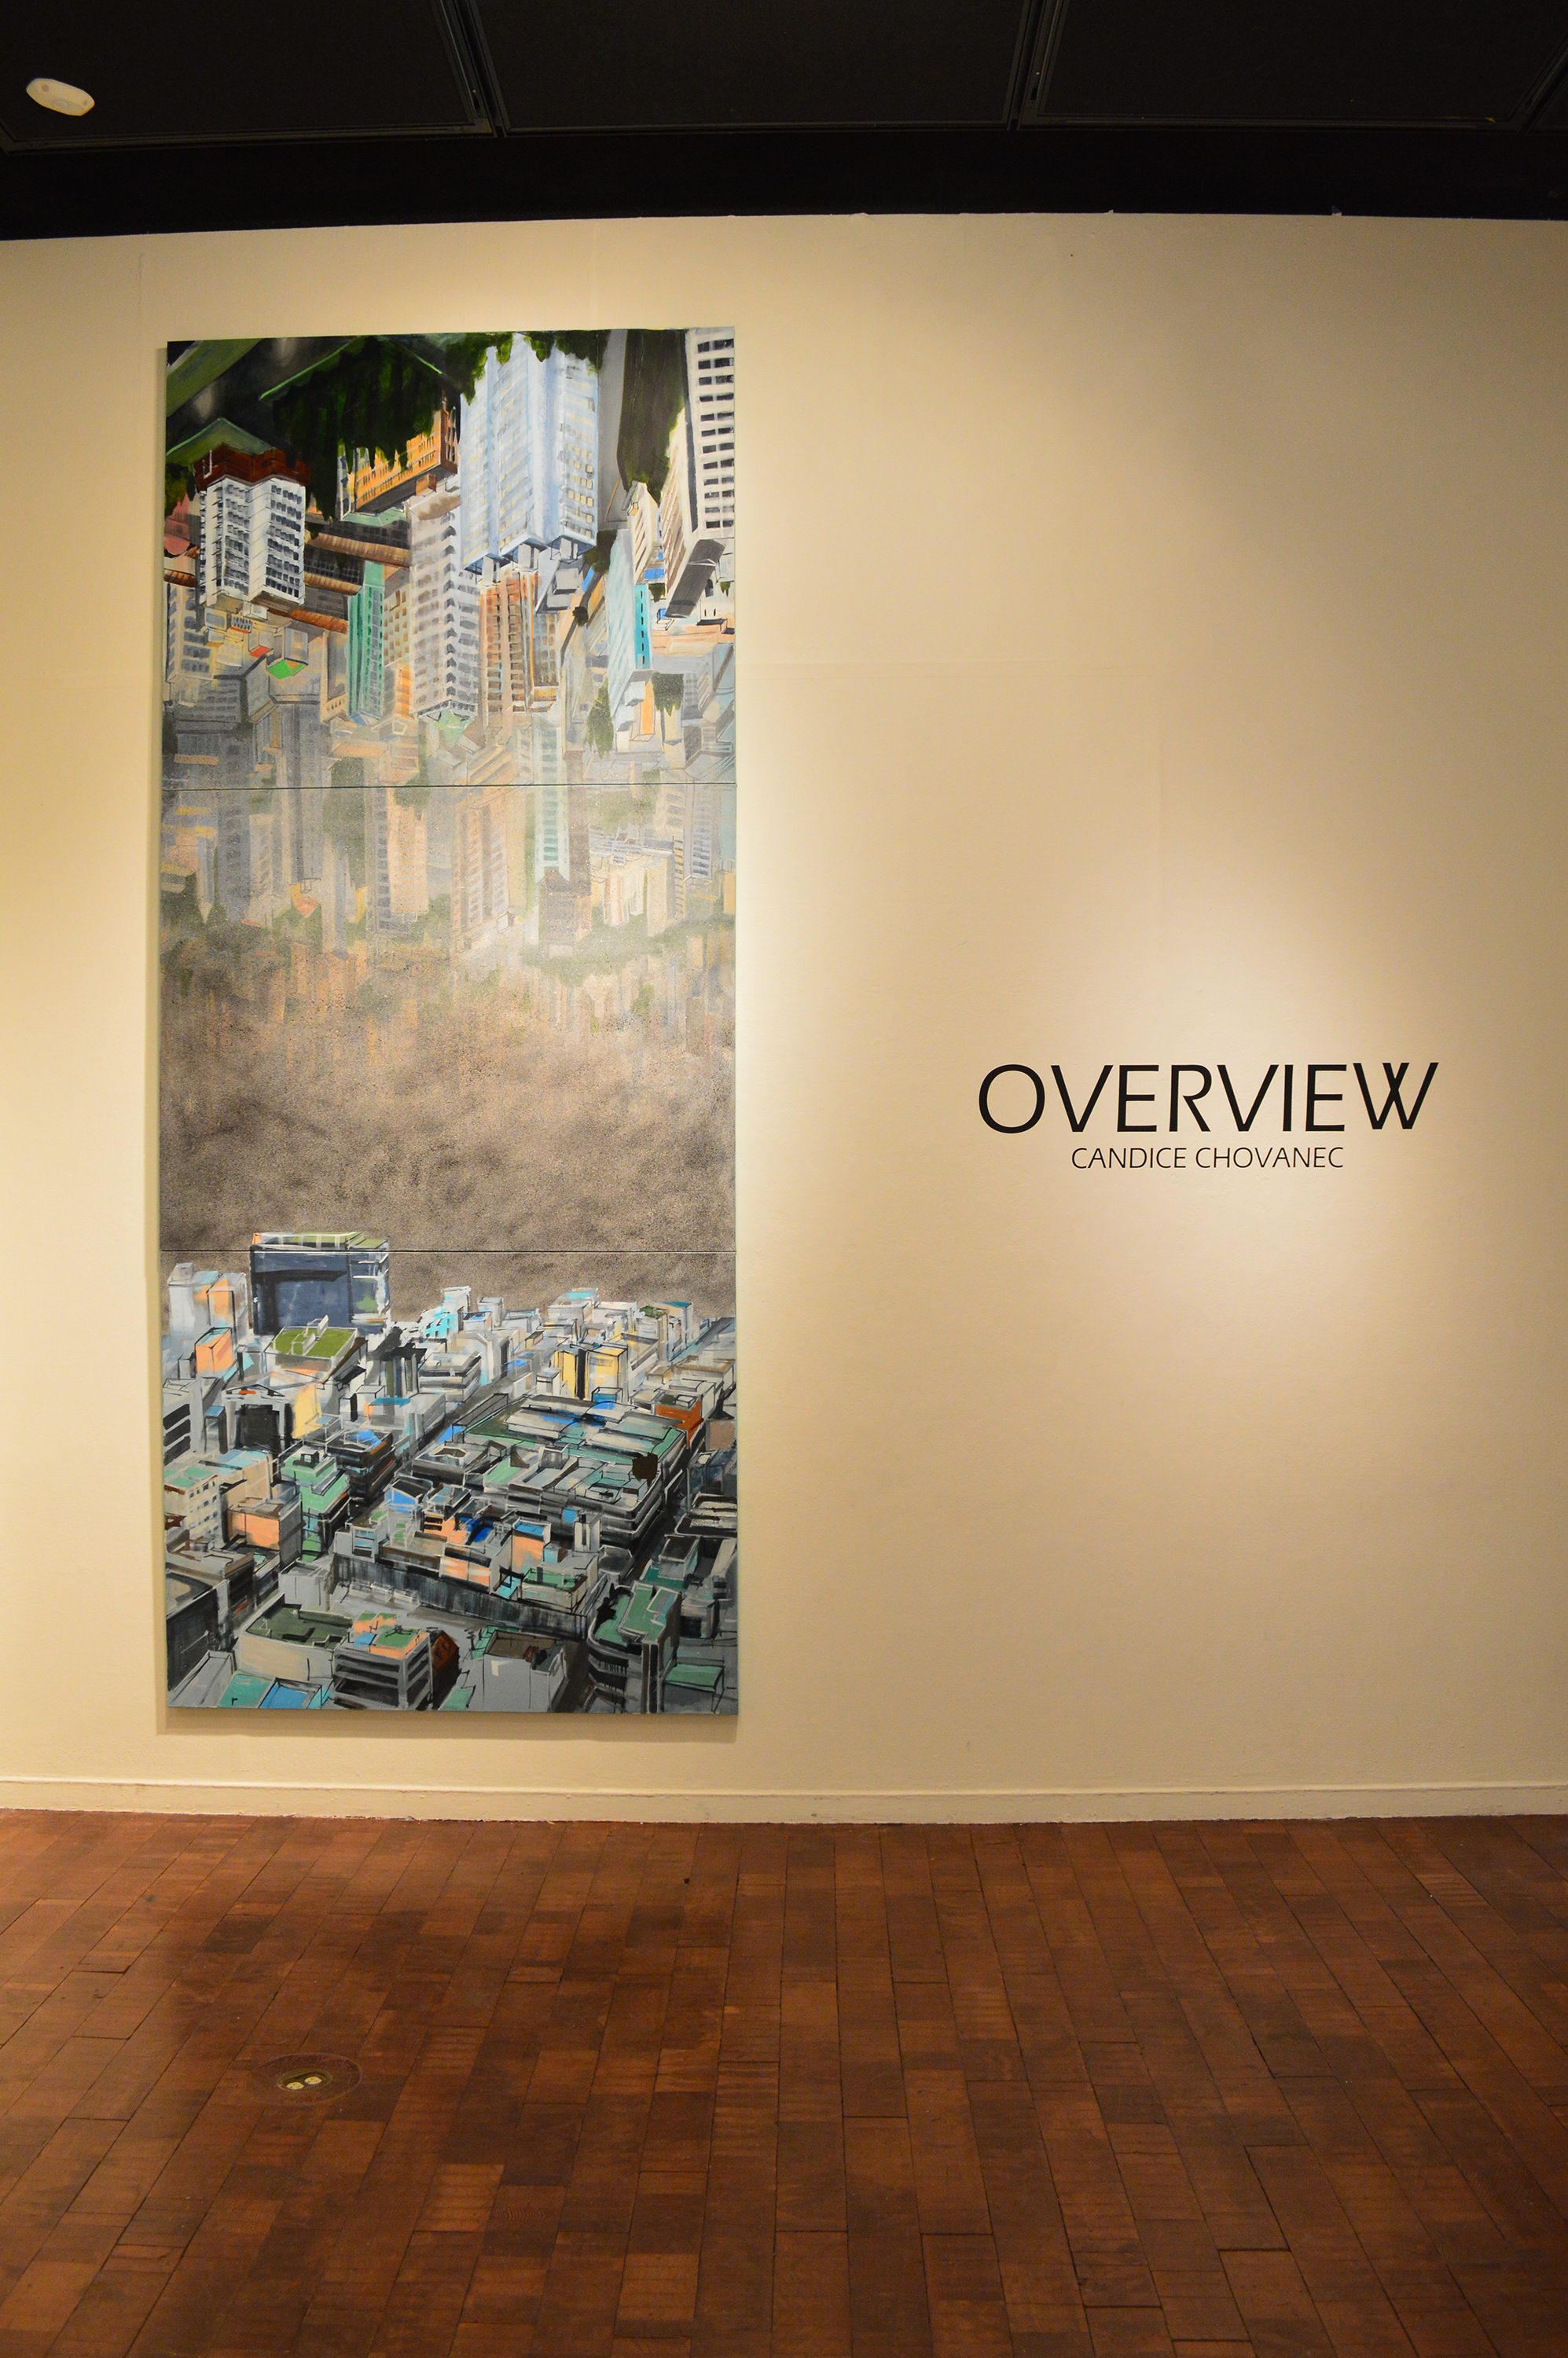 Overview Installation – Candice Chovanec